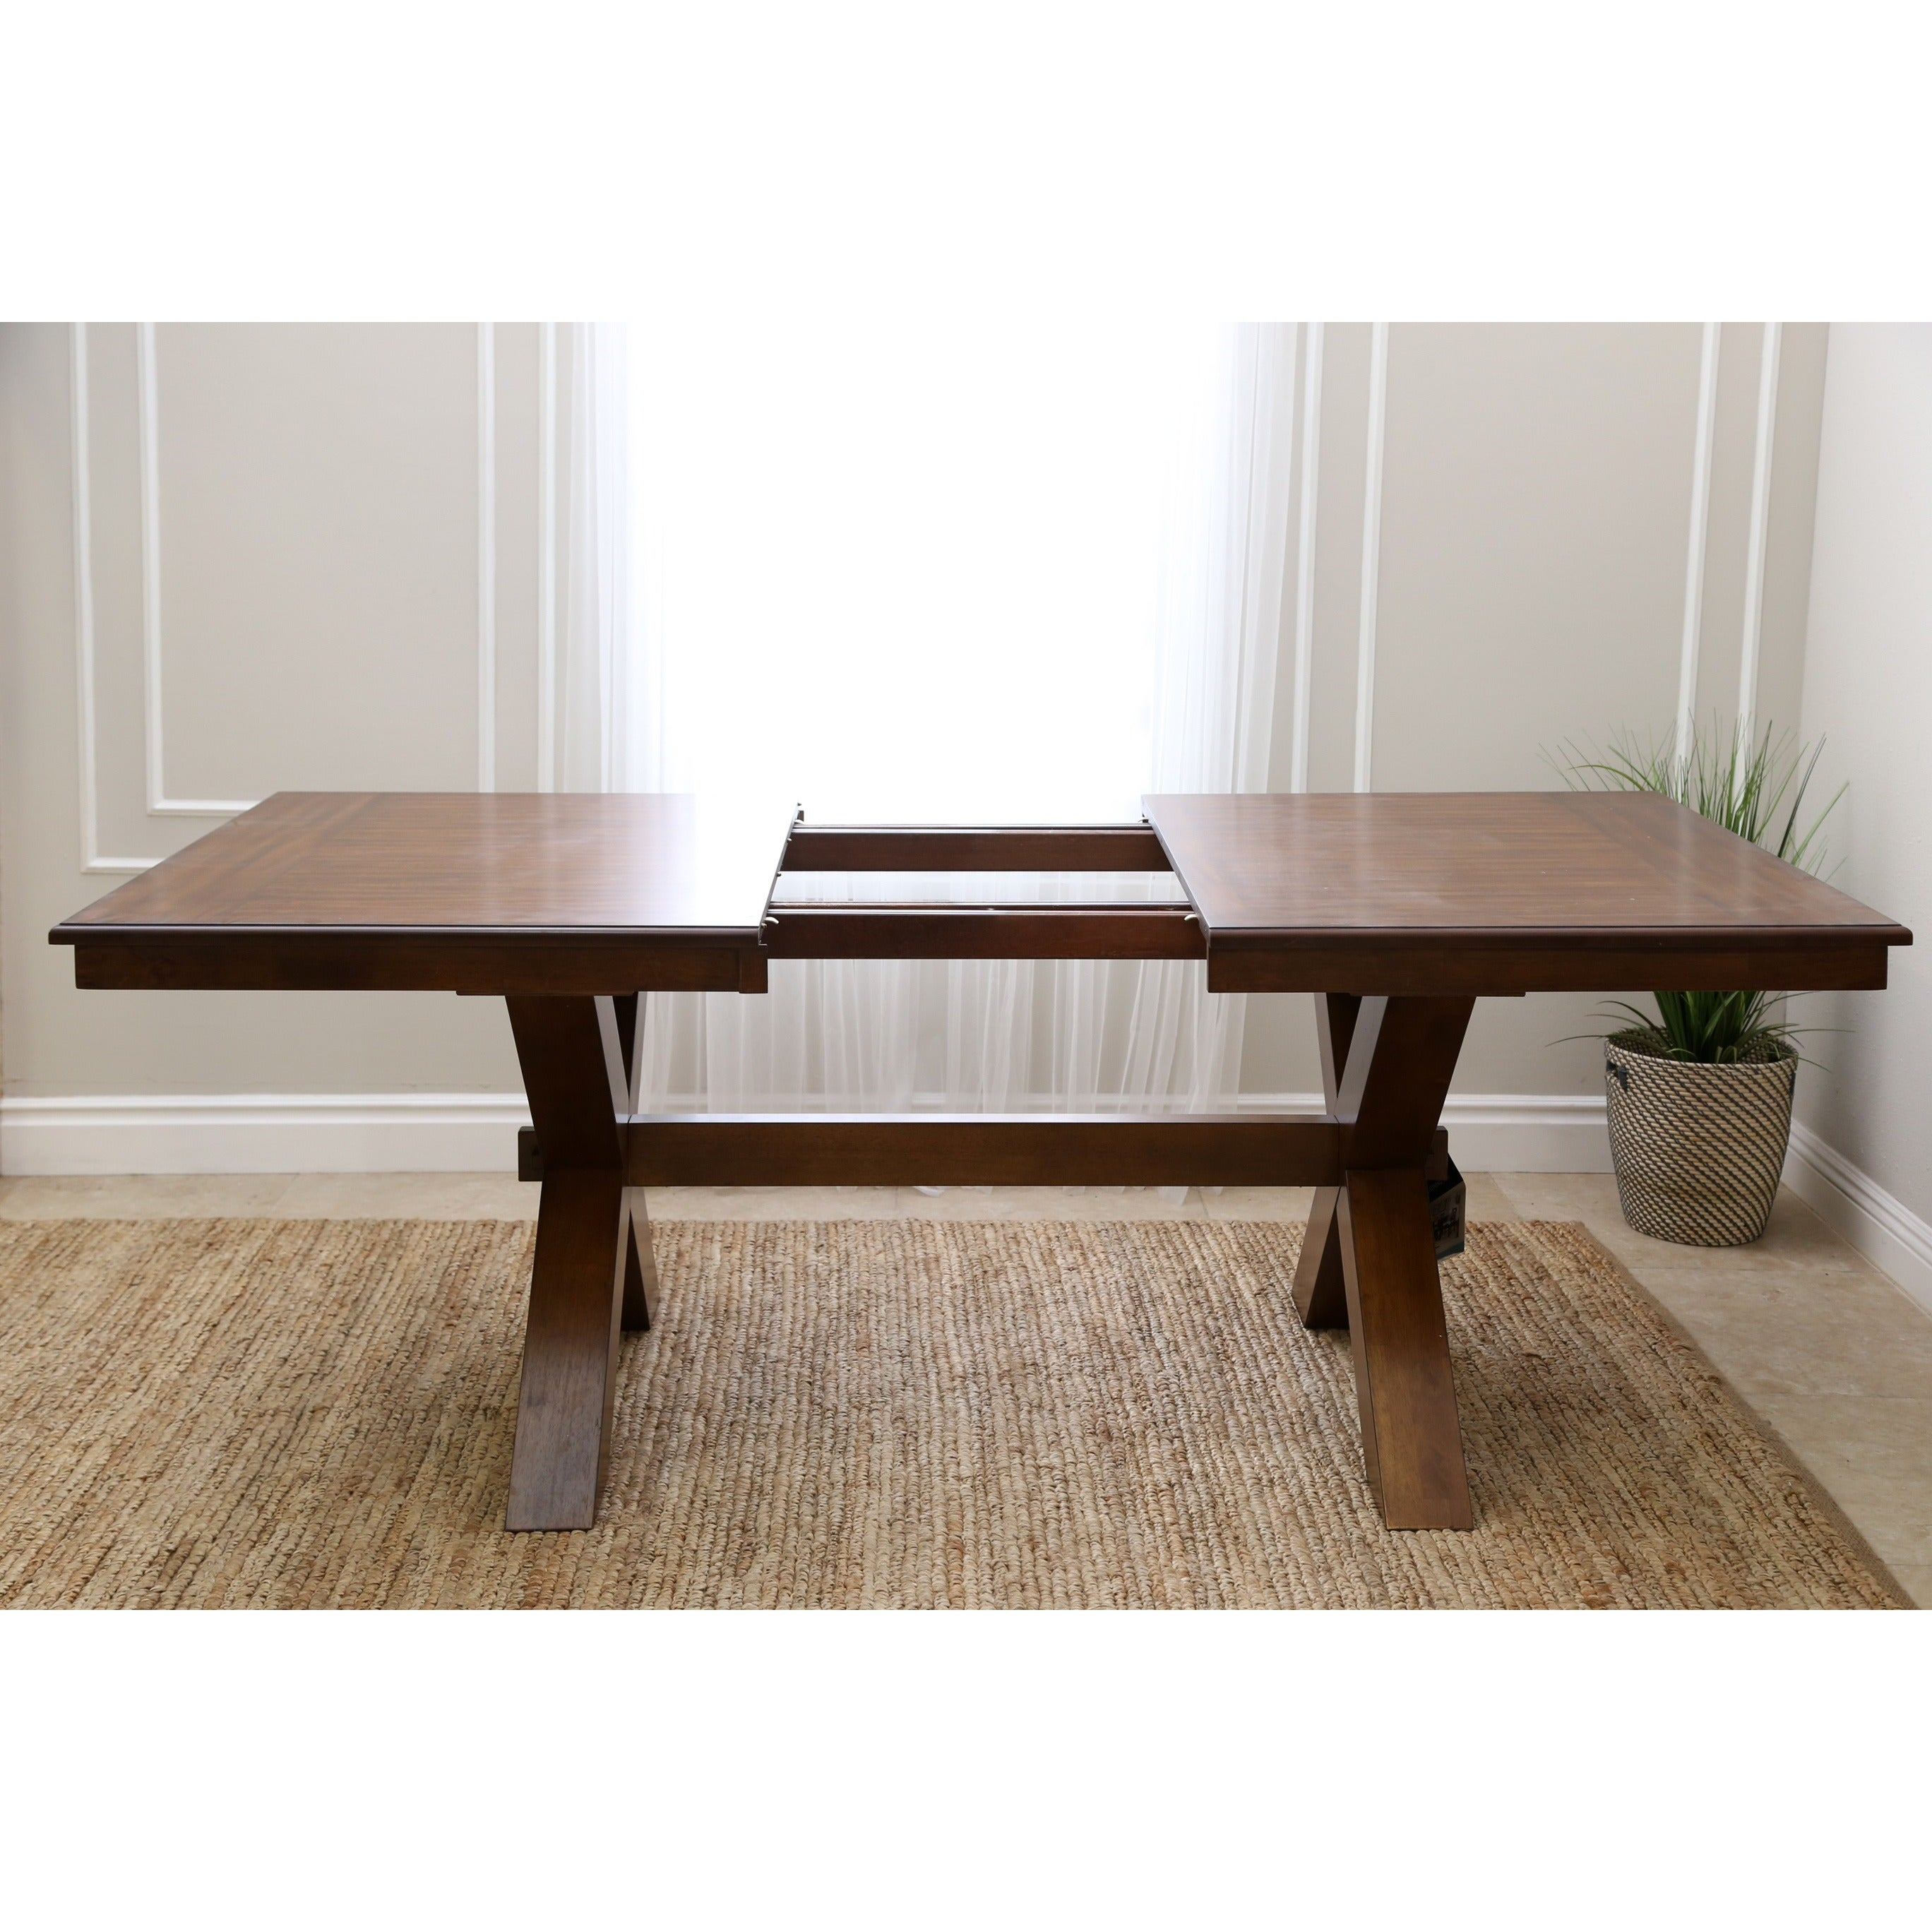 Beau Shop Abbyson Braxton Acacia Dining Table   Brown   On Sale   Free Shipping  Today   Overstock.com   12385019